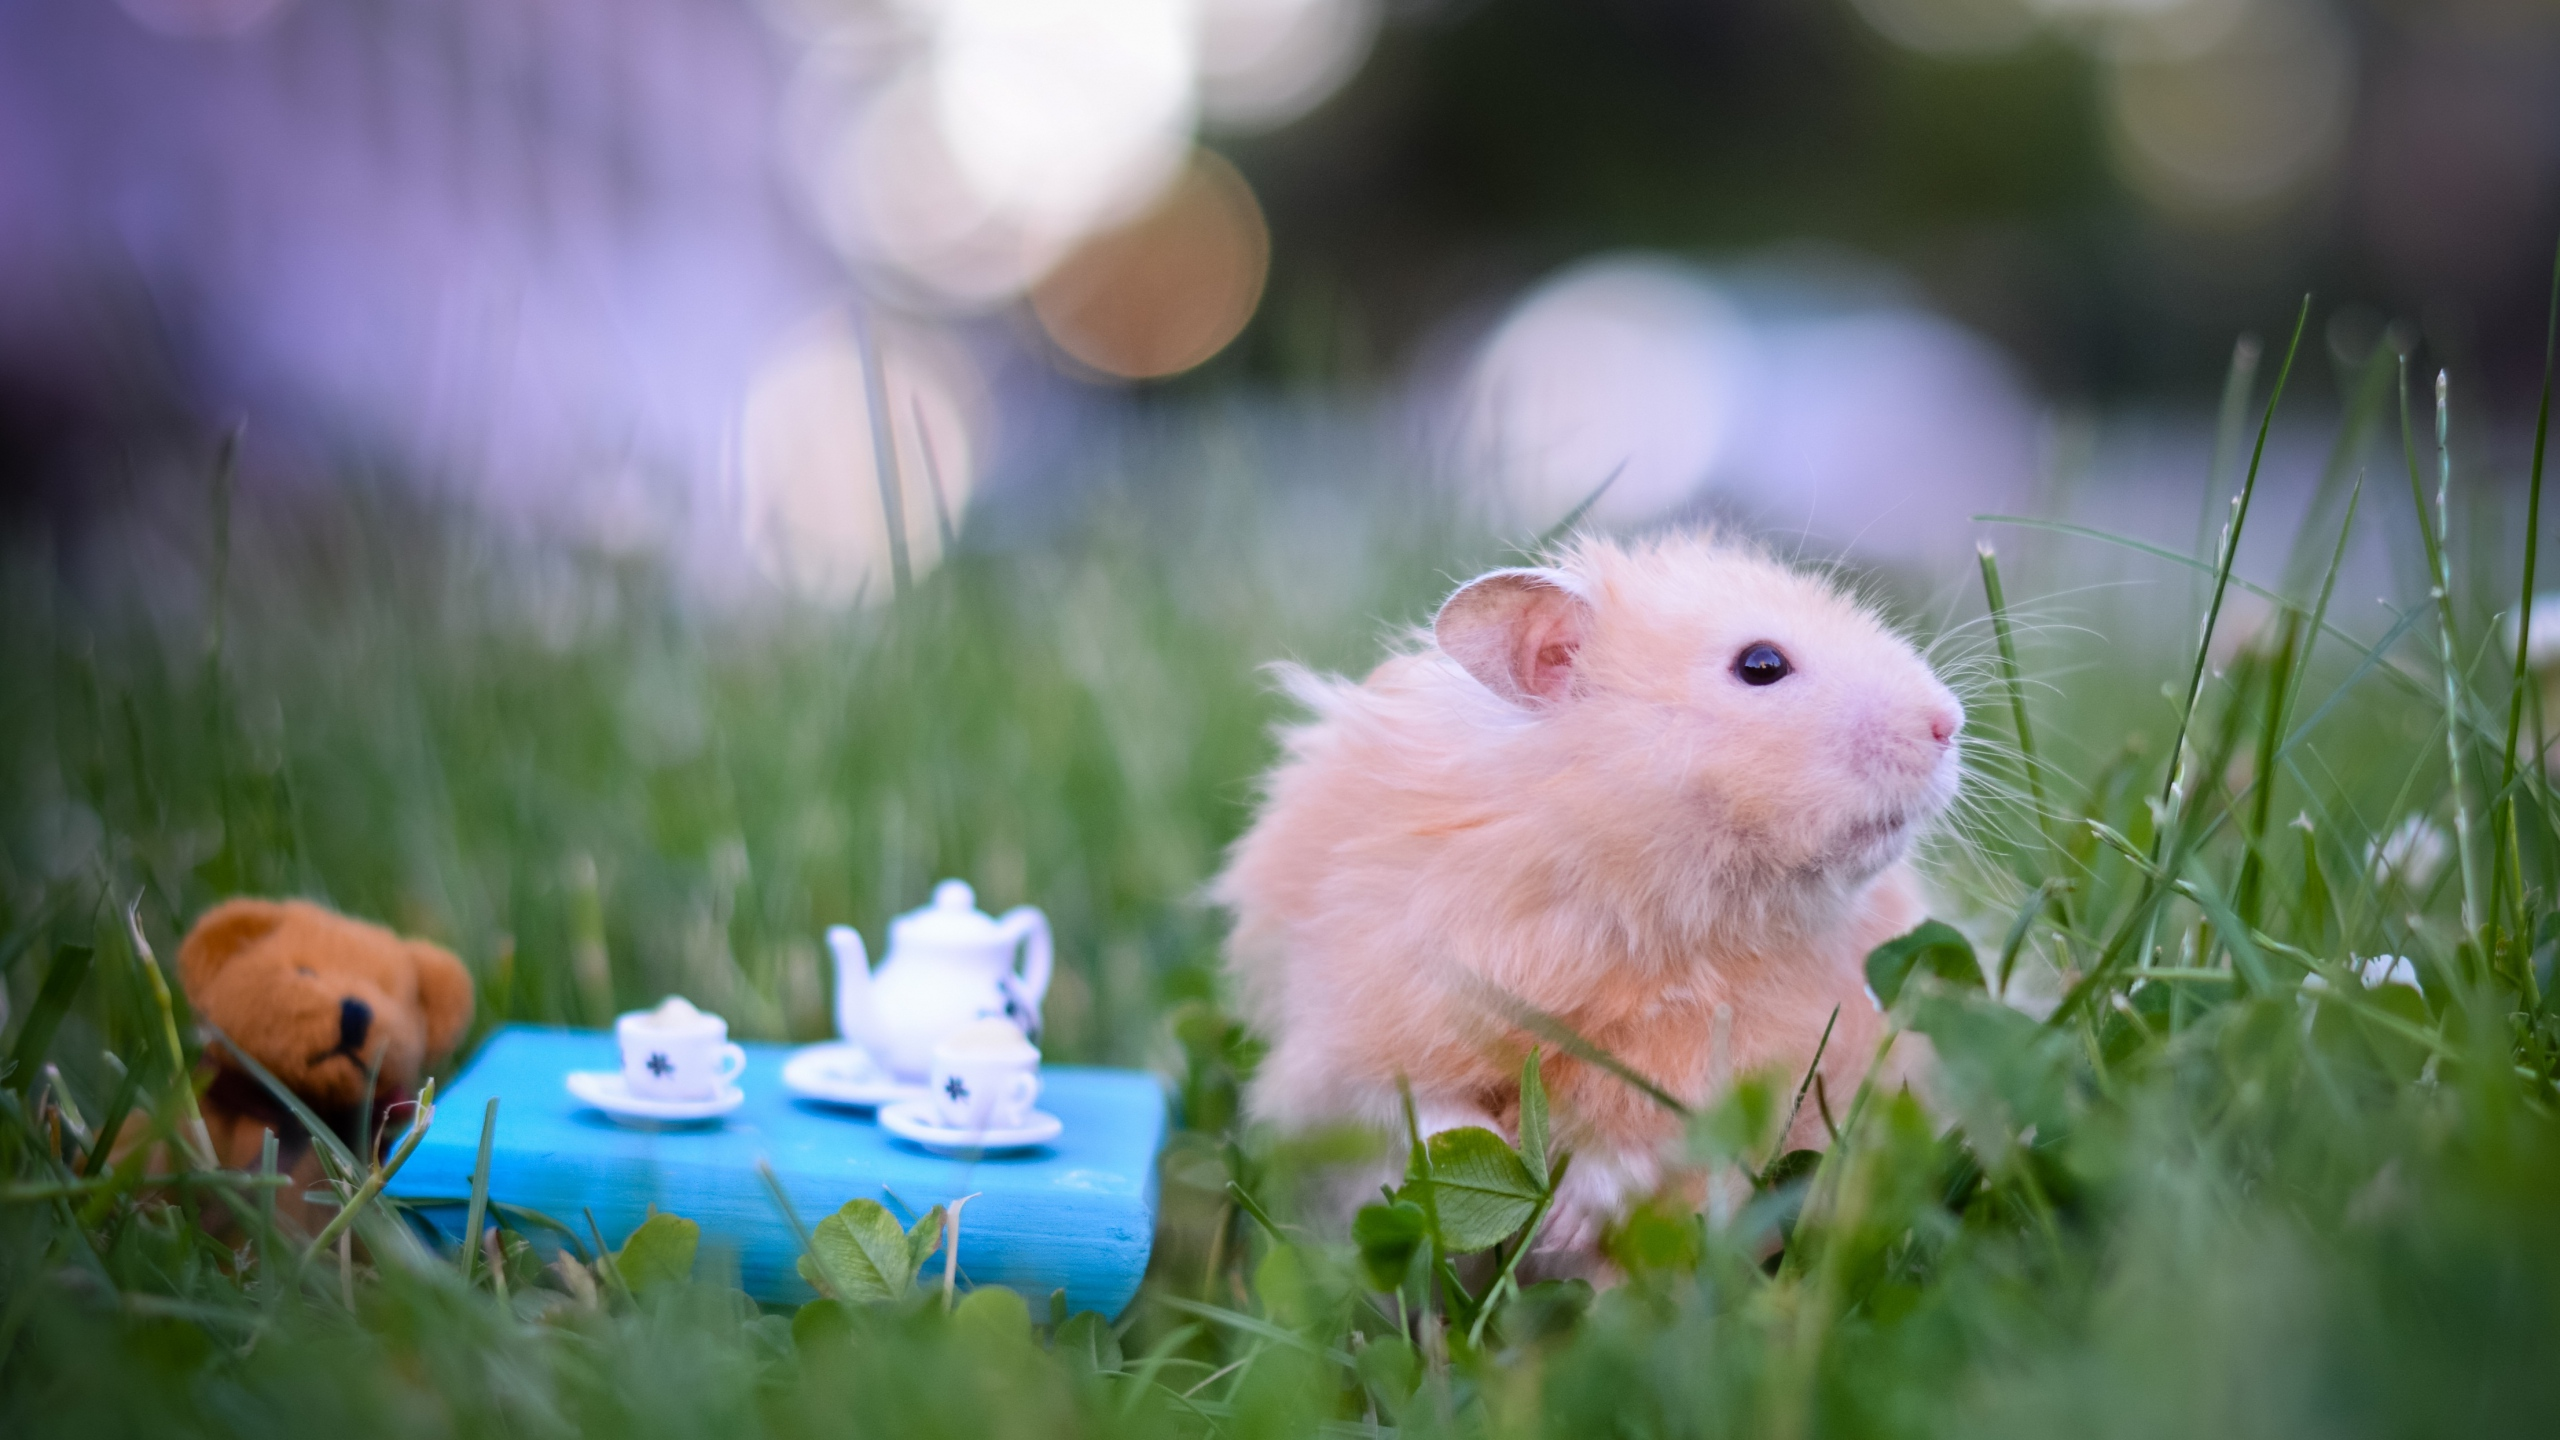 on July 28 2015 By Stephen Comments Off on Cute Hamsters Wallpapers 2560x1440